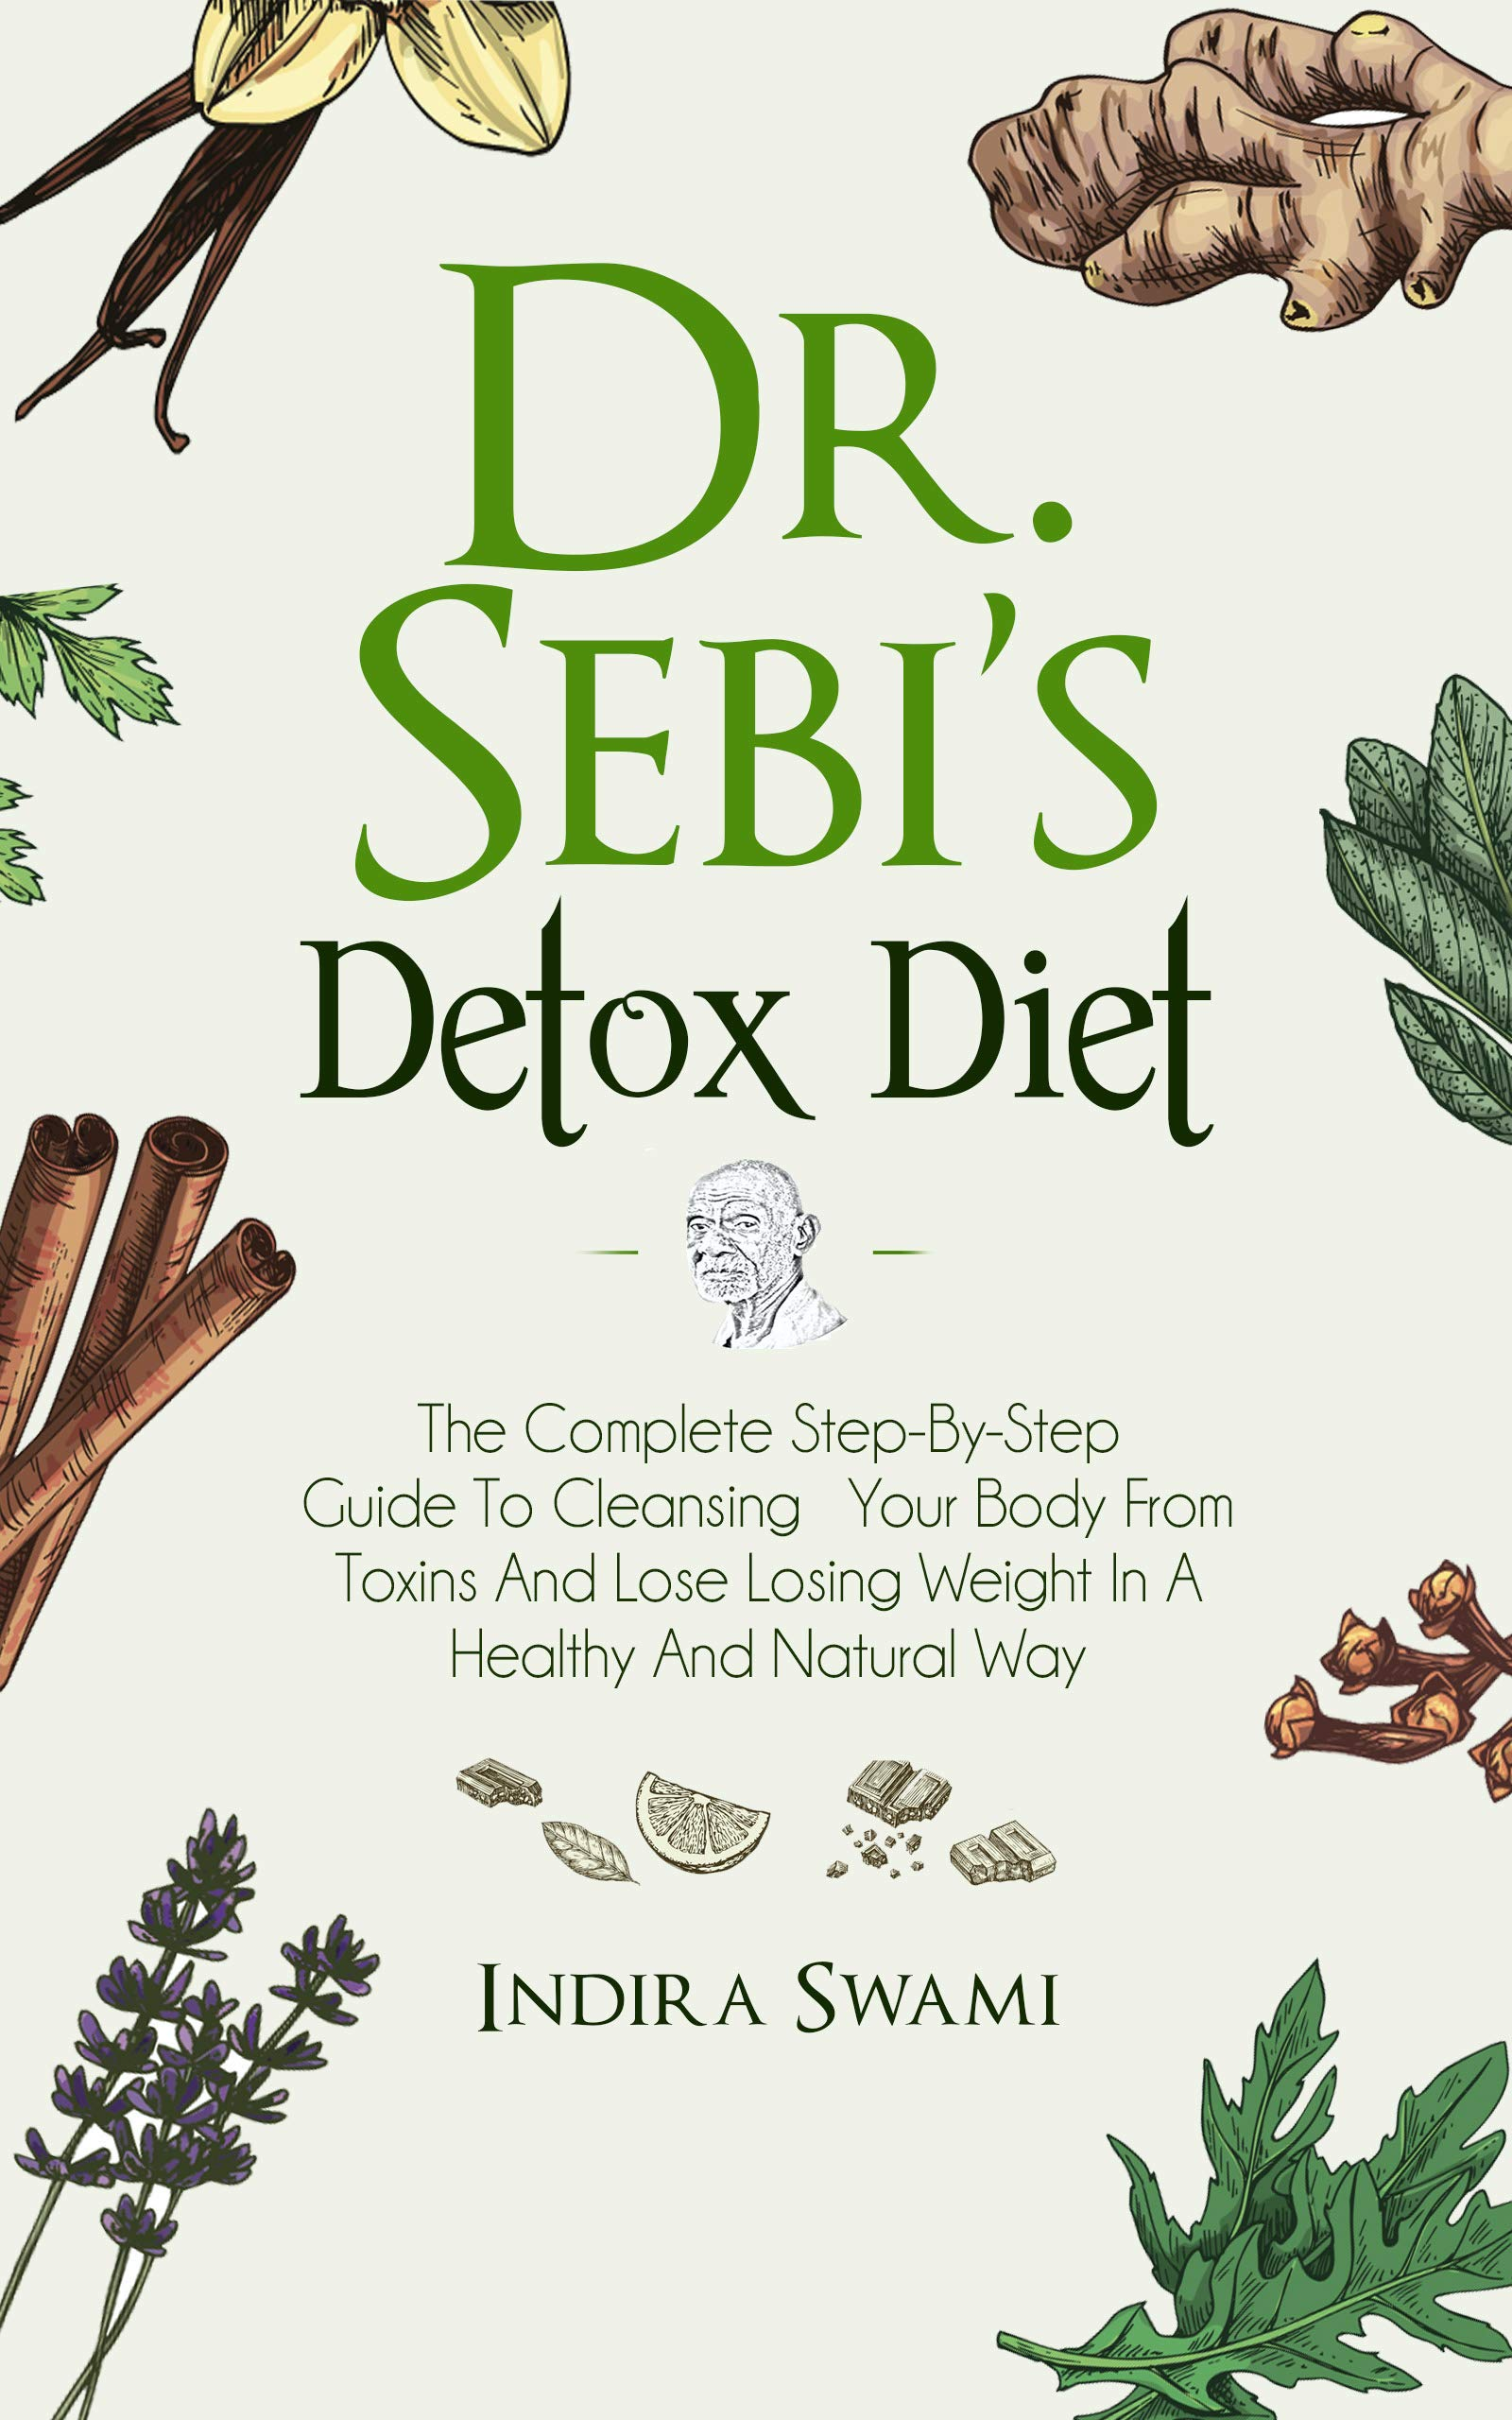 Dr. Sebi's Detox Diet: The Complete Step-By-Step Guide To Cleansing Your Body From Toxins And Losing Weight In A Healthy And Natural Way (Dr Sebi Book 3)